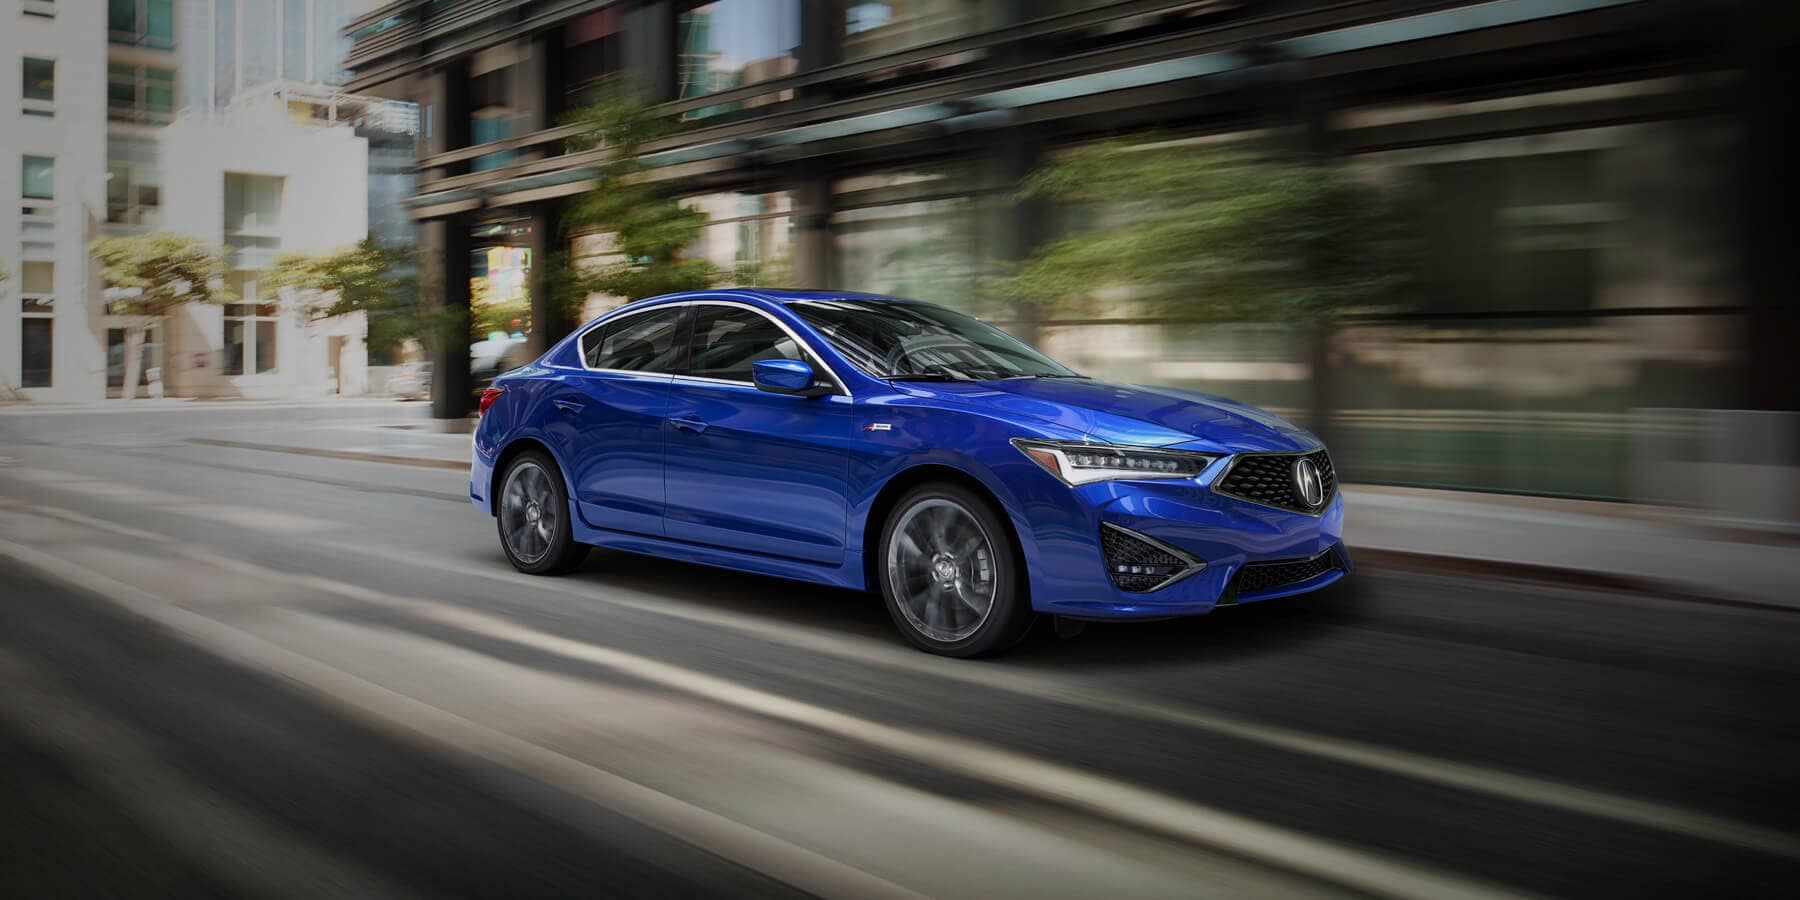 2019 Acura ILX Apex Blue Pearl Front Angle HP Slide